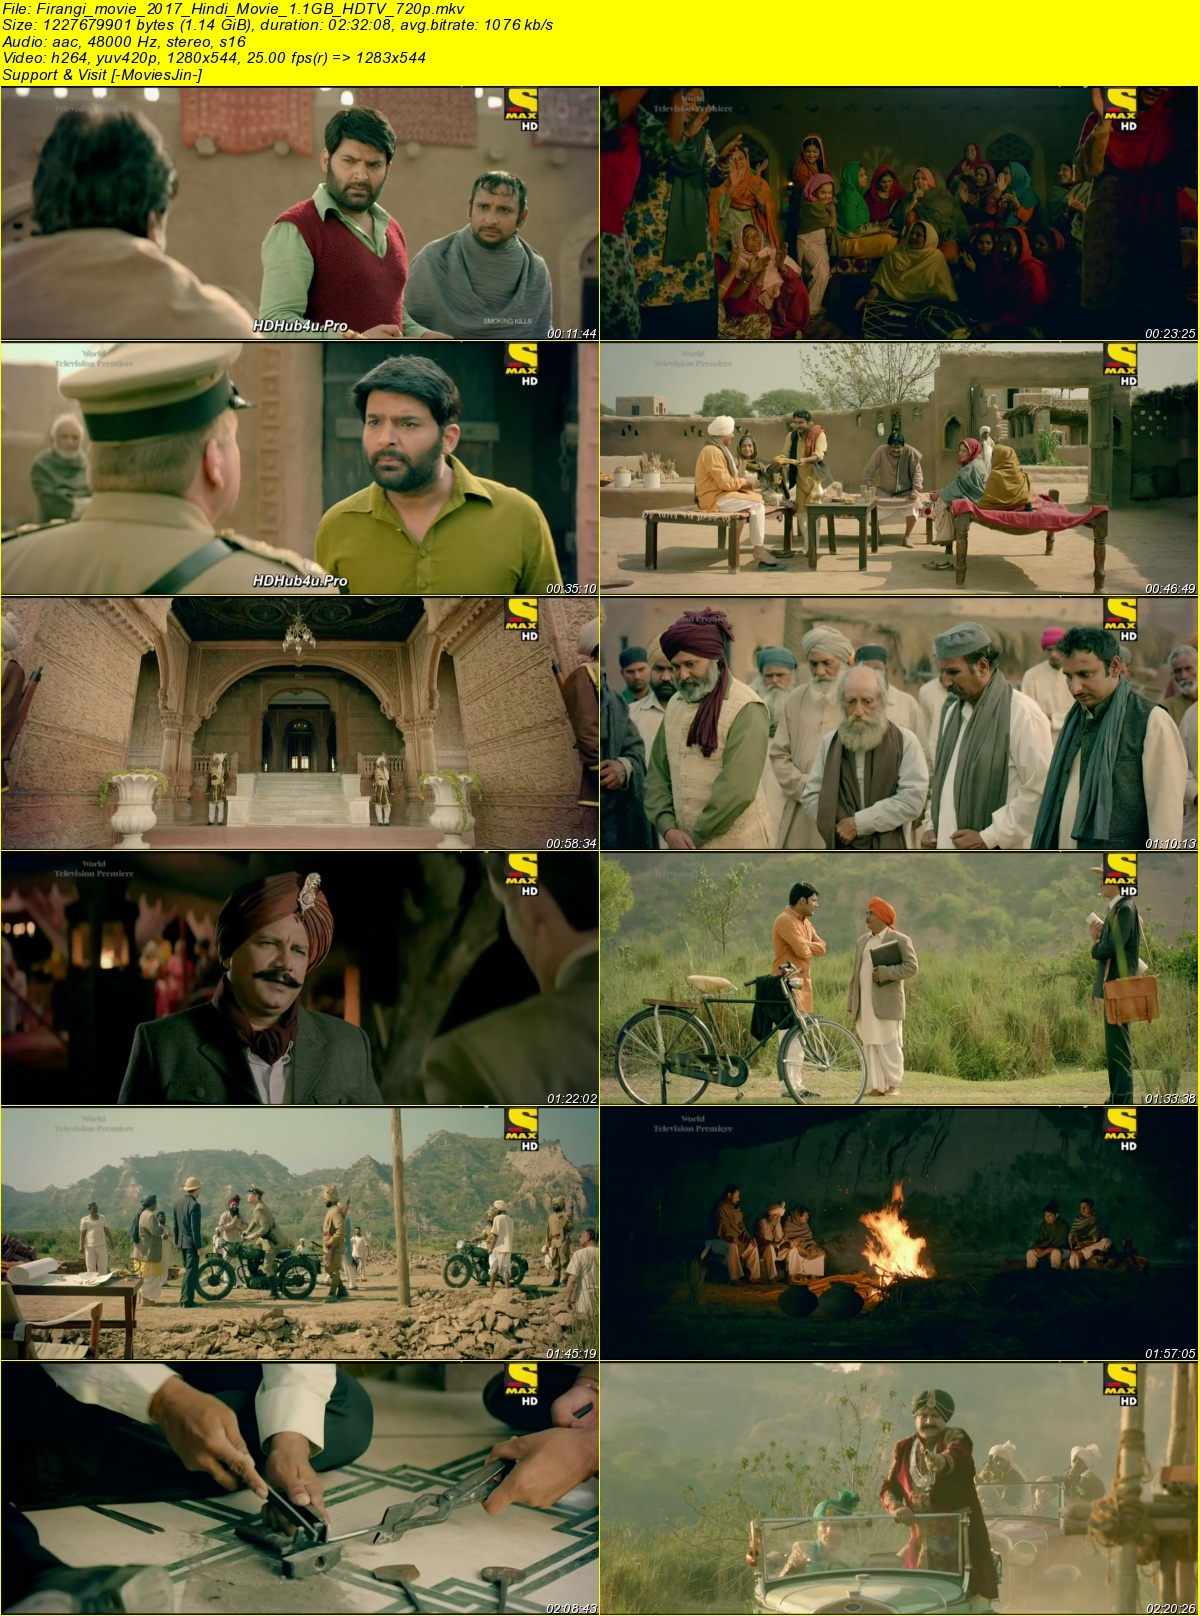 Watch Online Firangi 2017 Full Movie Hindi 1.1GB HDTV 720p Full Movie Download 8xfilms, 9xmovies, hdhub4u